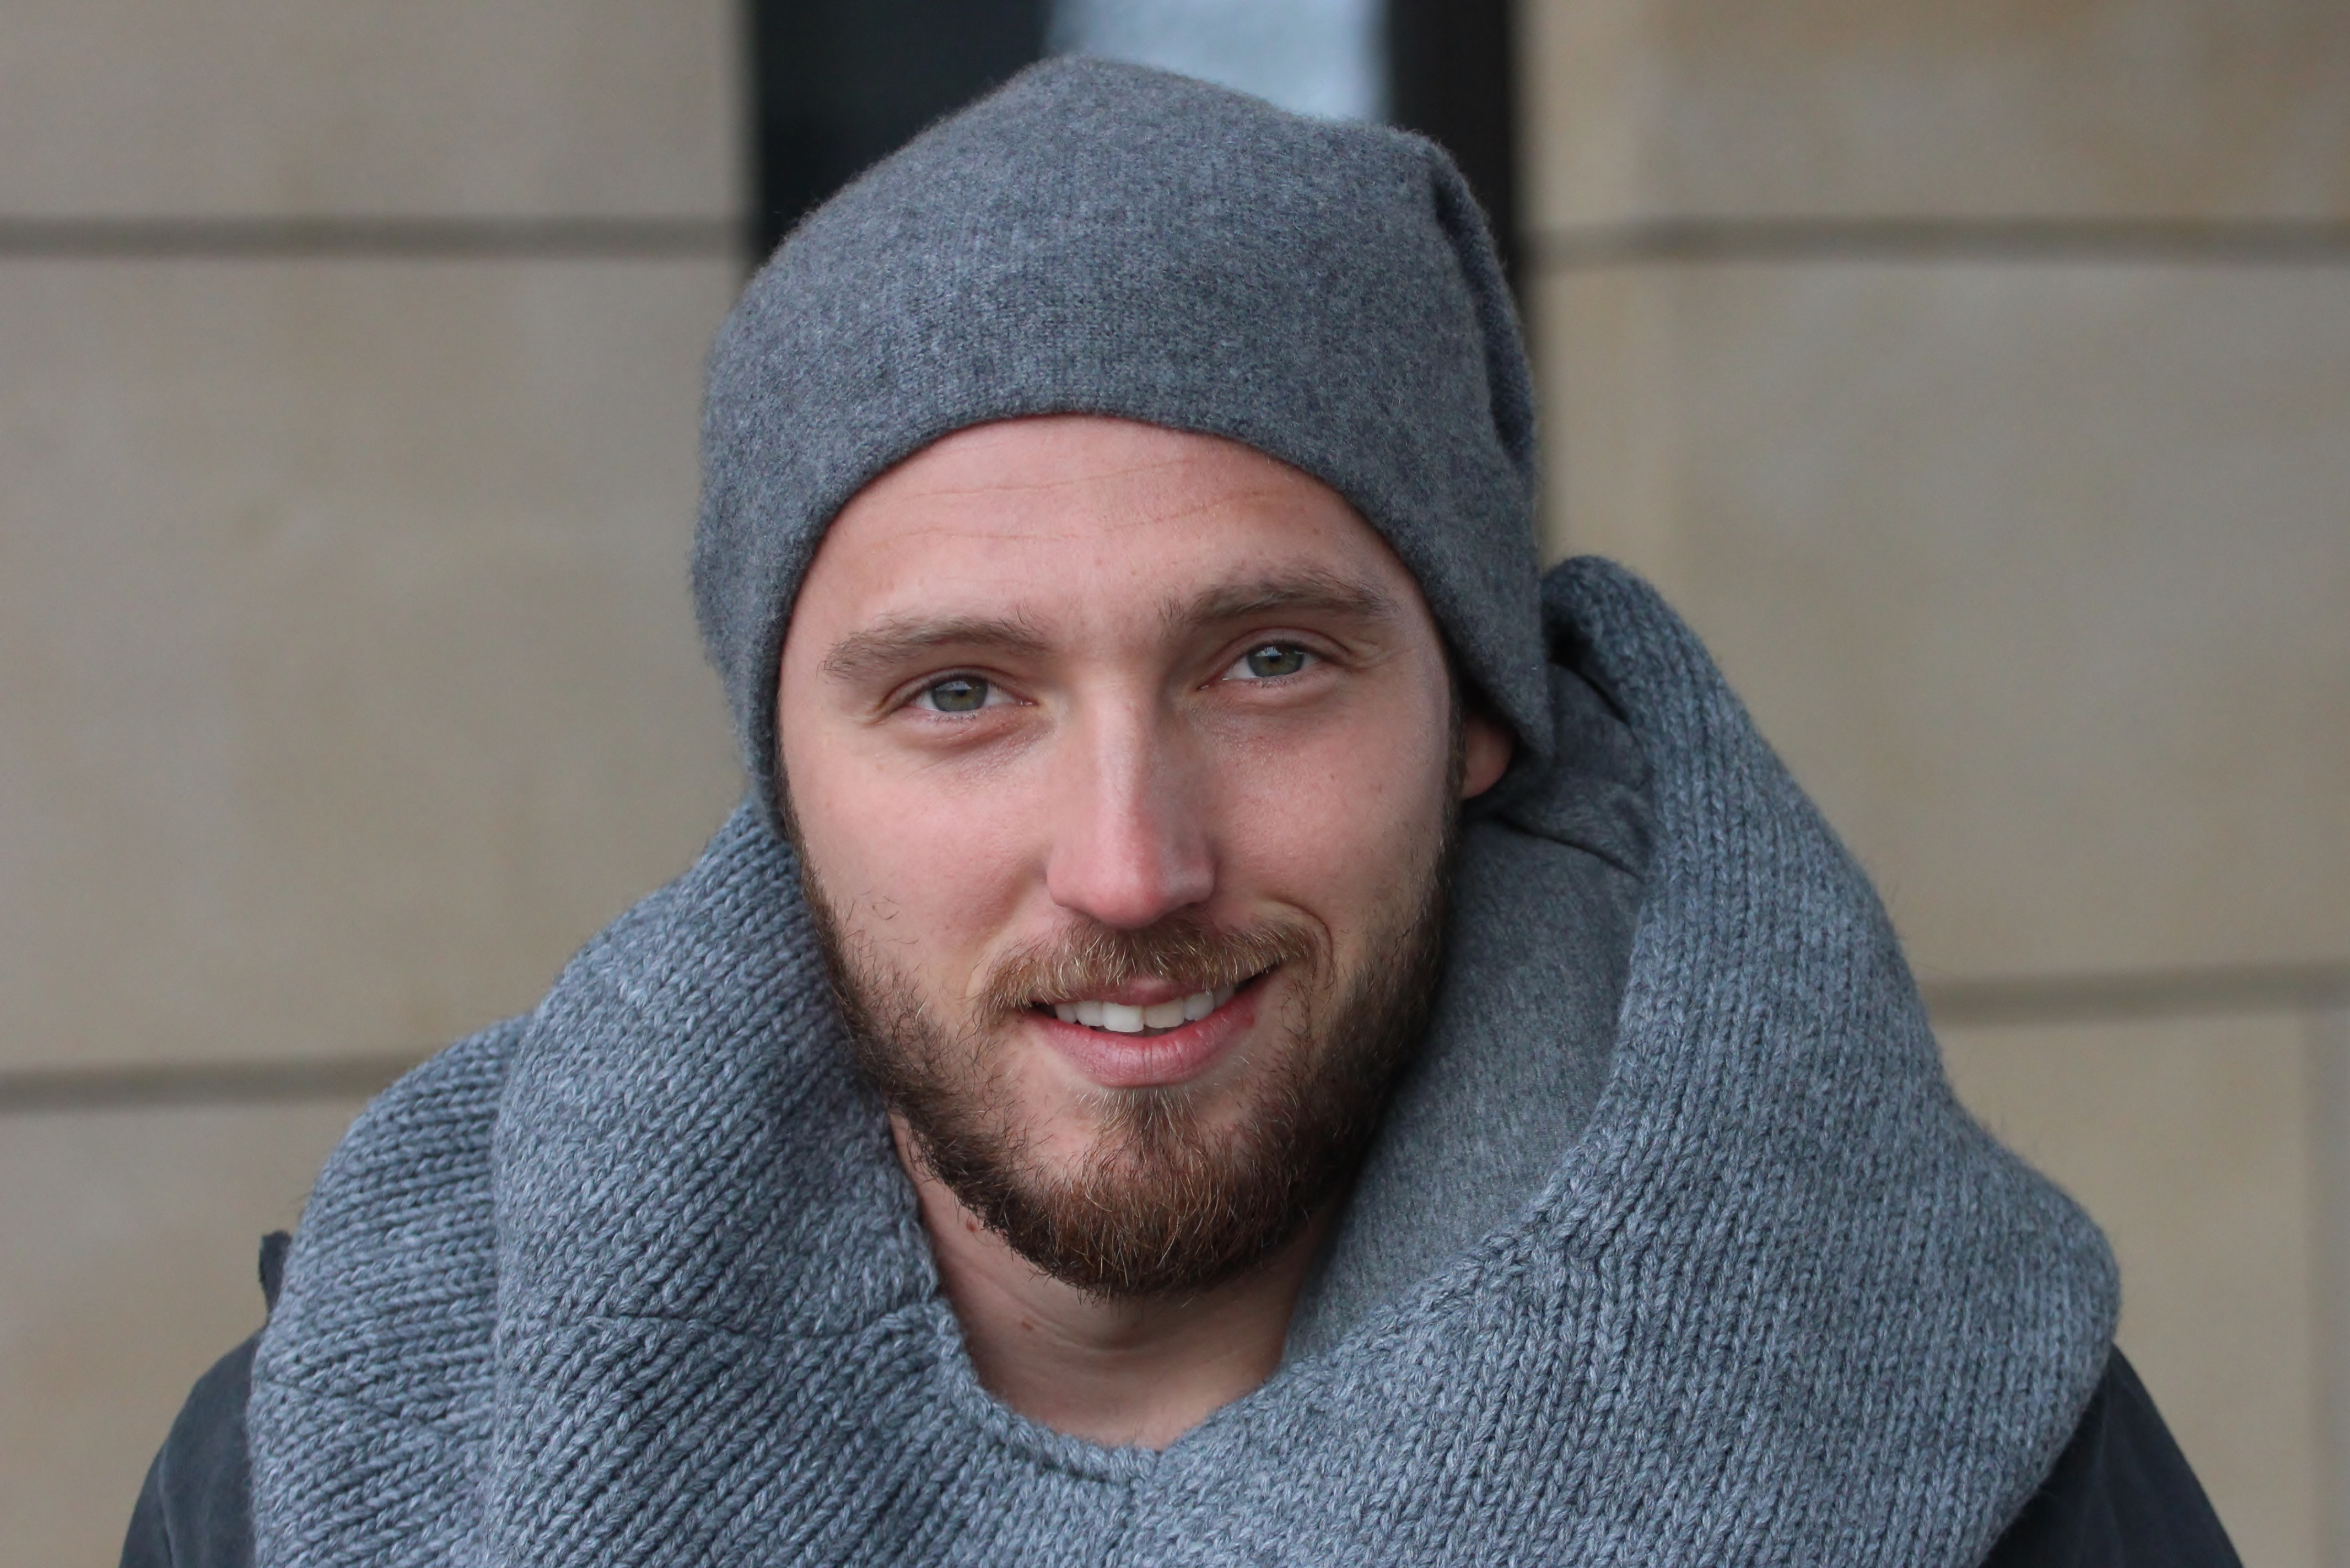 The 29-year old son of father (?) and mother(?) Marco Höger in 2018 photo. Marco Höger earned a  million dollar salary - leaving the net worth at 9 million in 2018